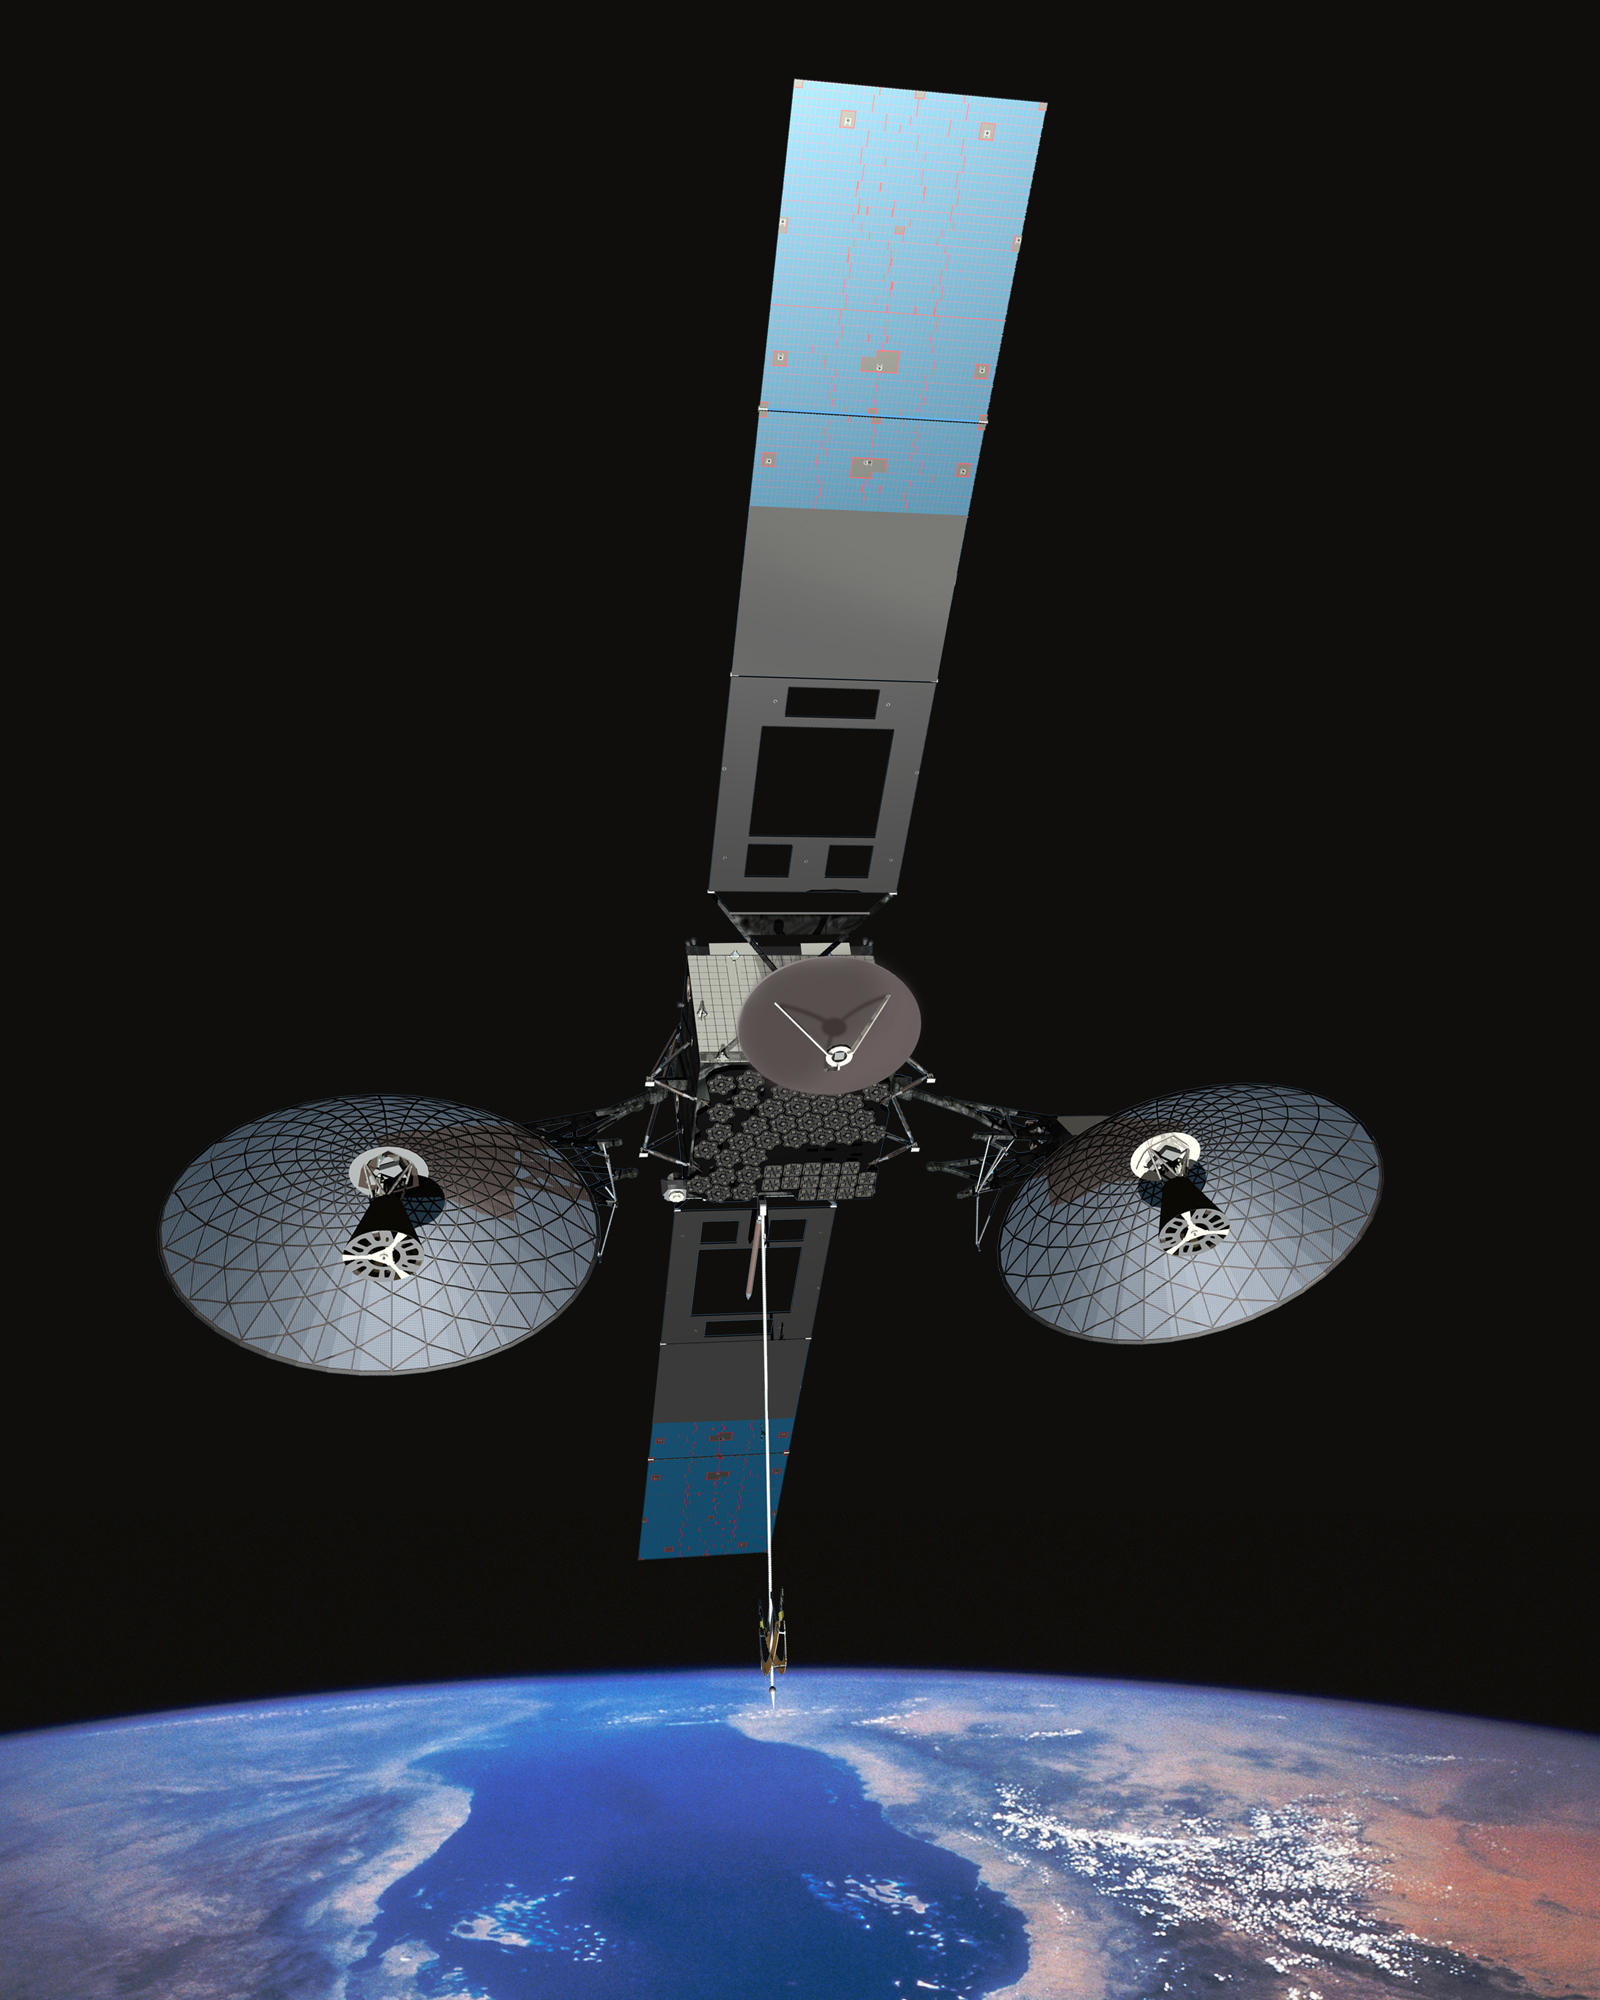 Tracking and Data Relay Satellite (TDRS) First Generation